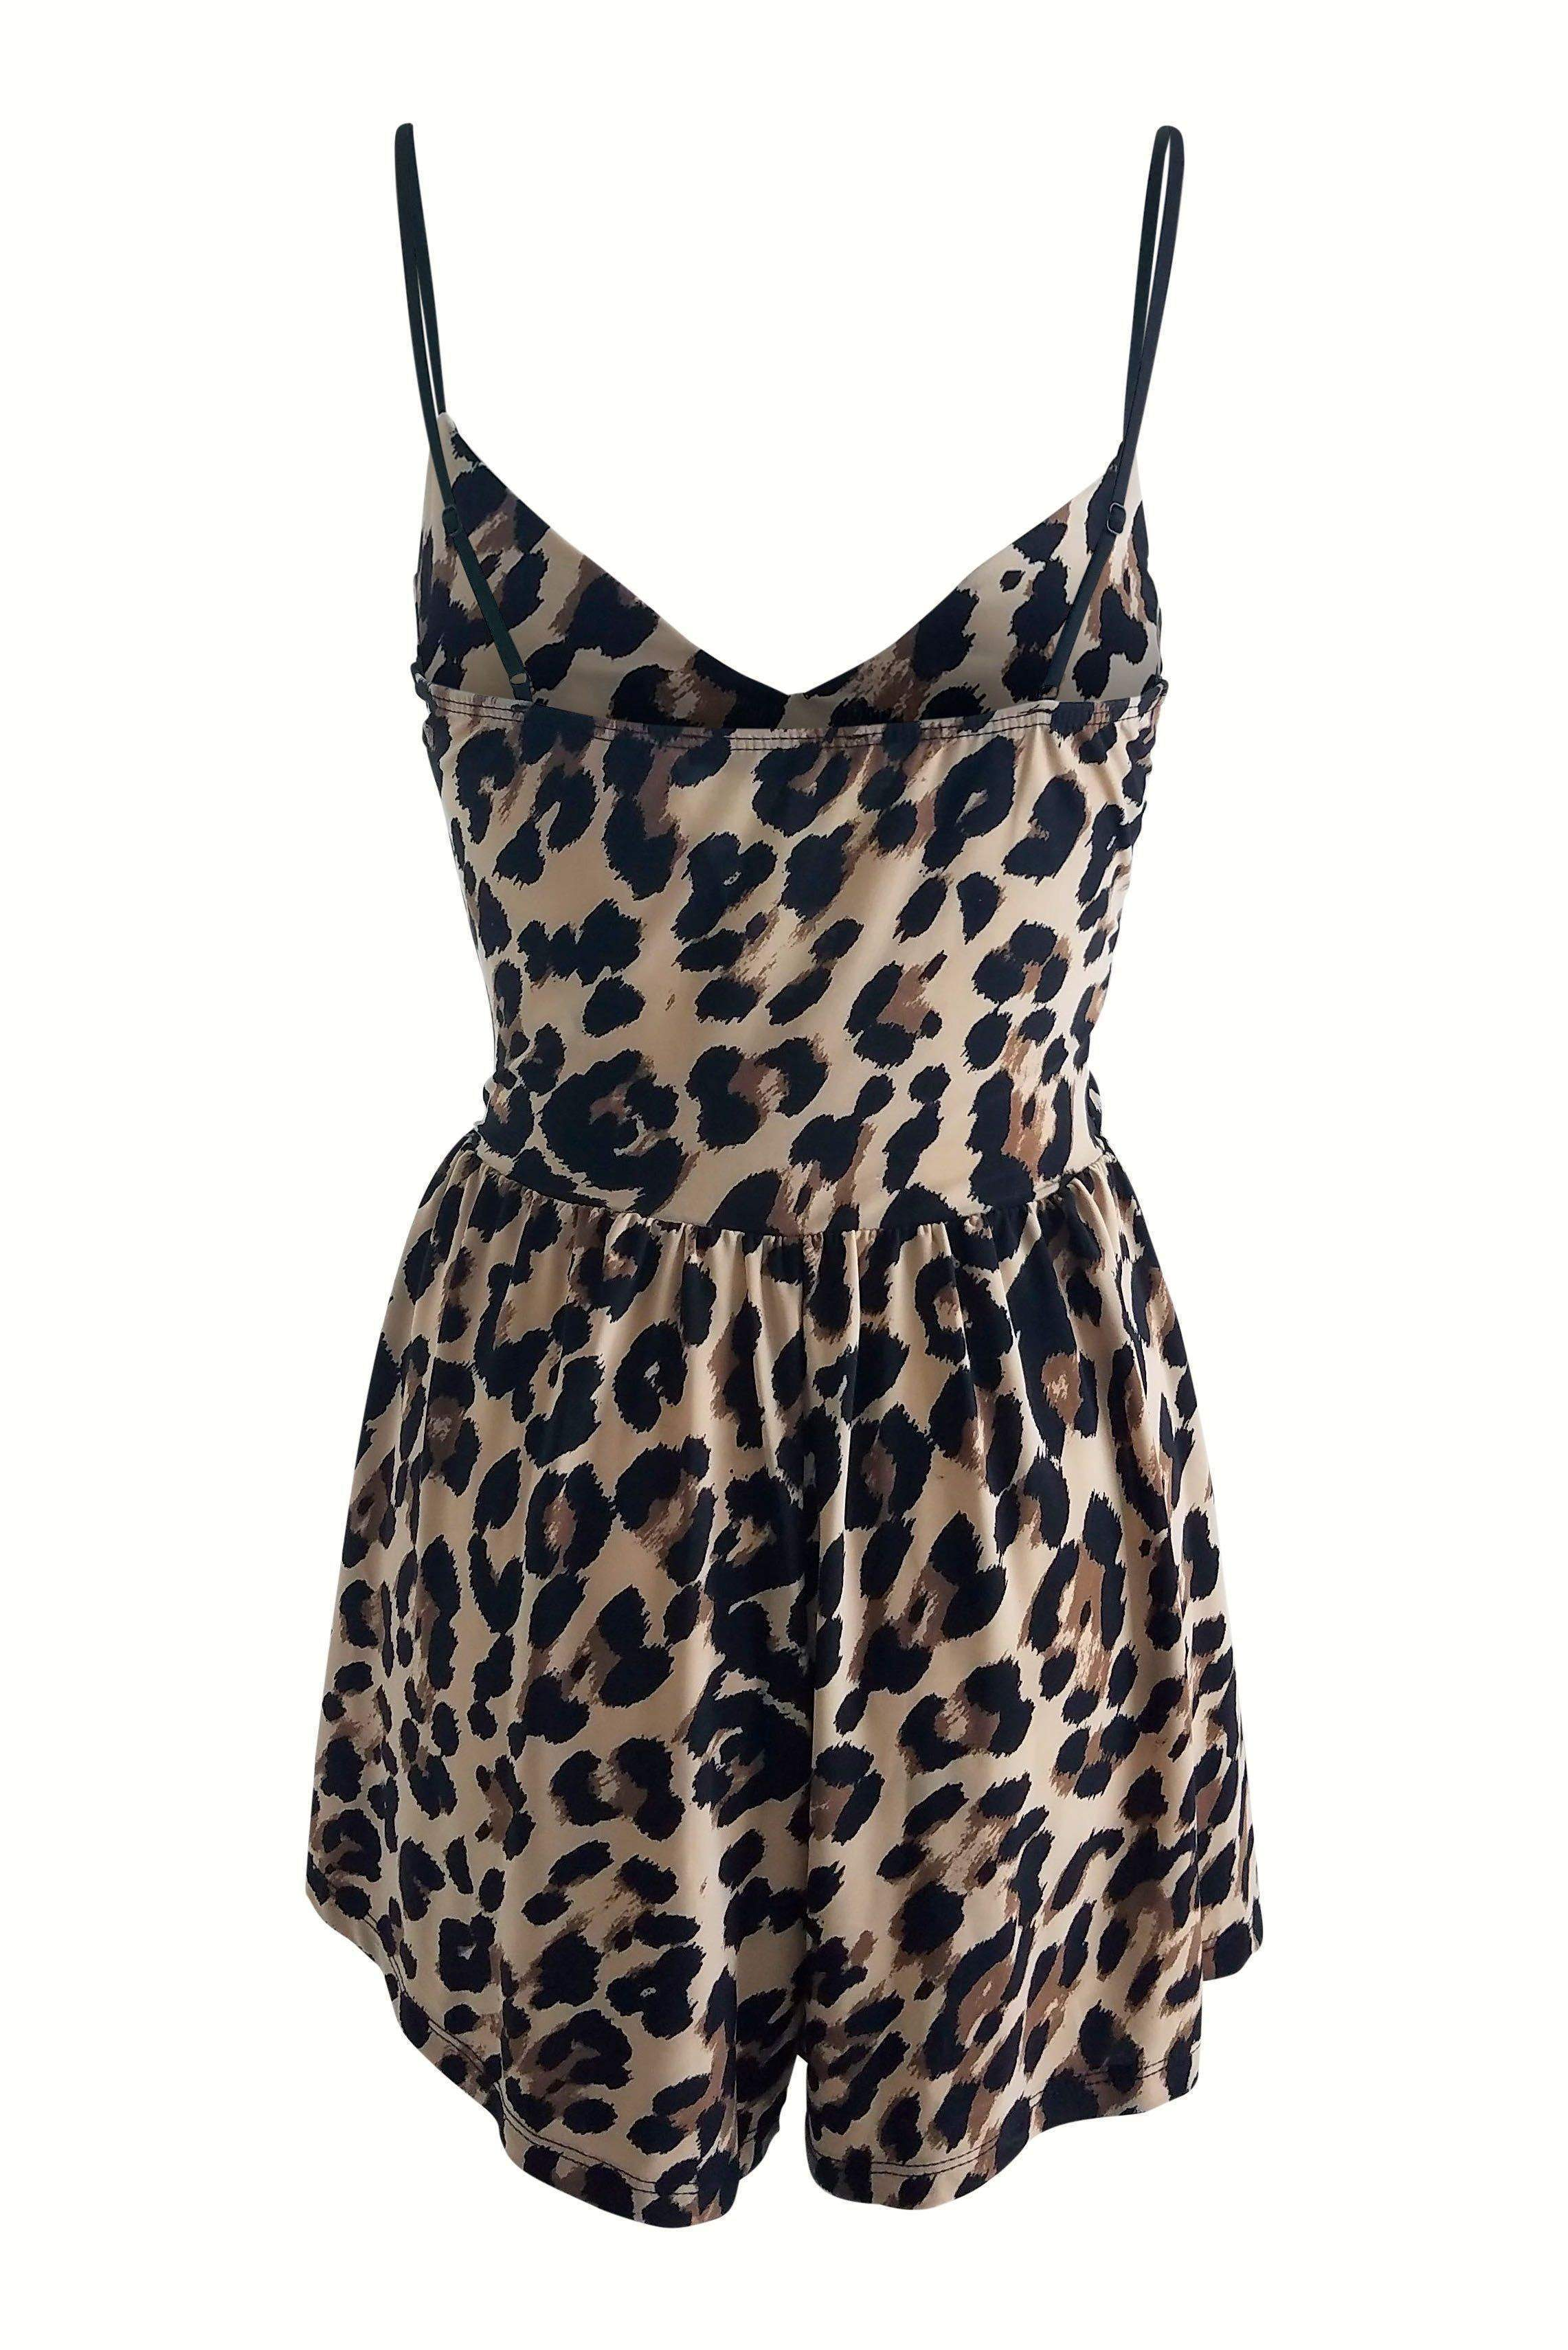 On the Prowl Romper Playsuit in Leopard - Final Sale - Playsuit - Symphony - BKLYN Bodies